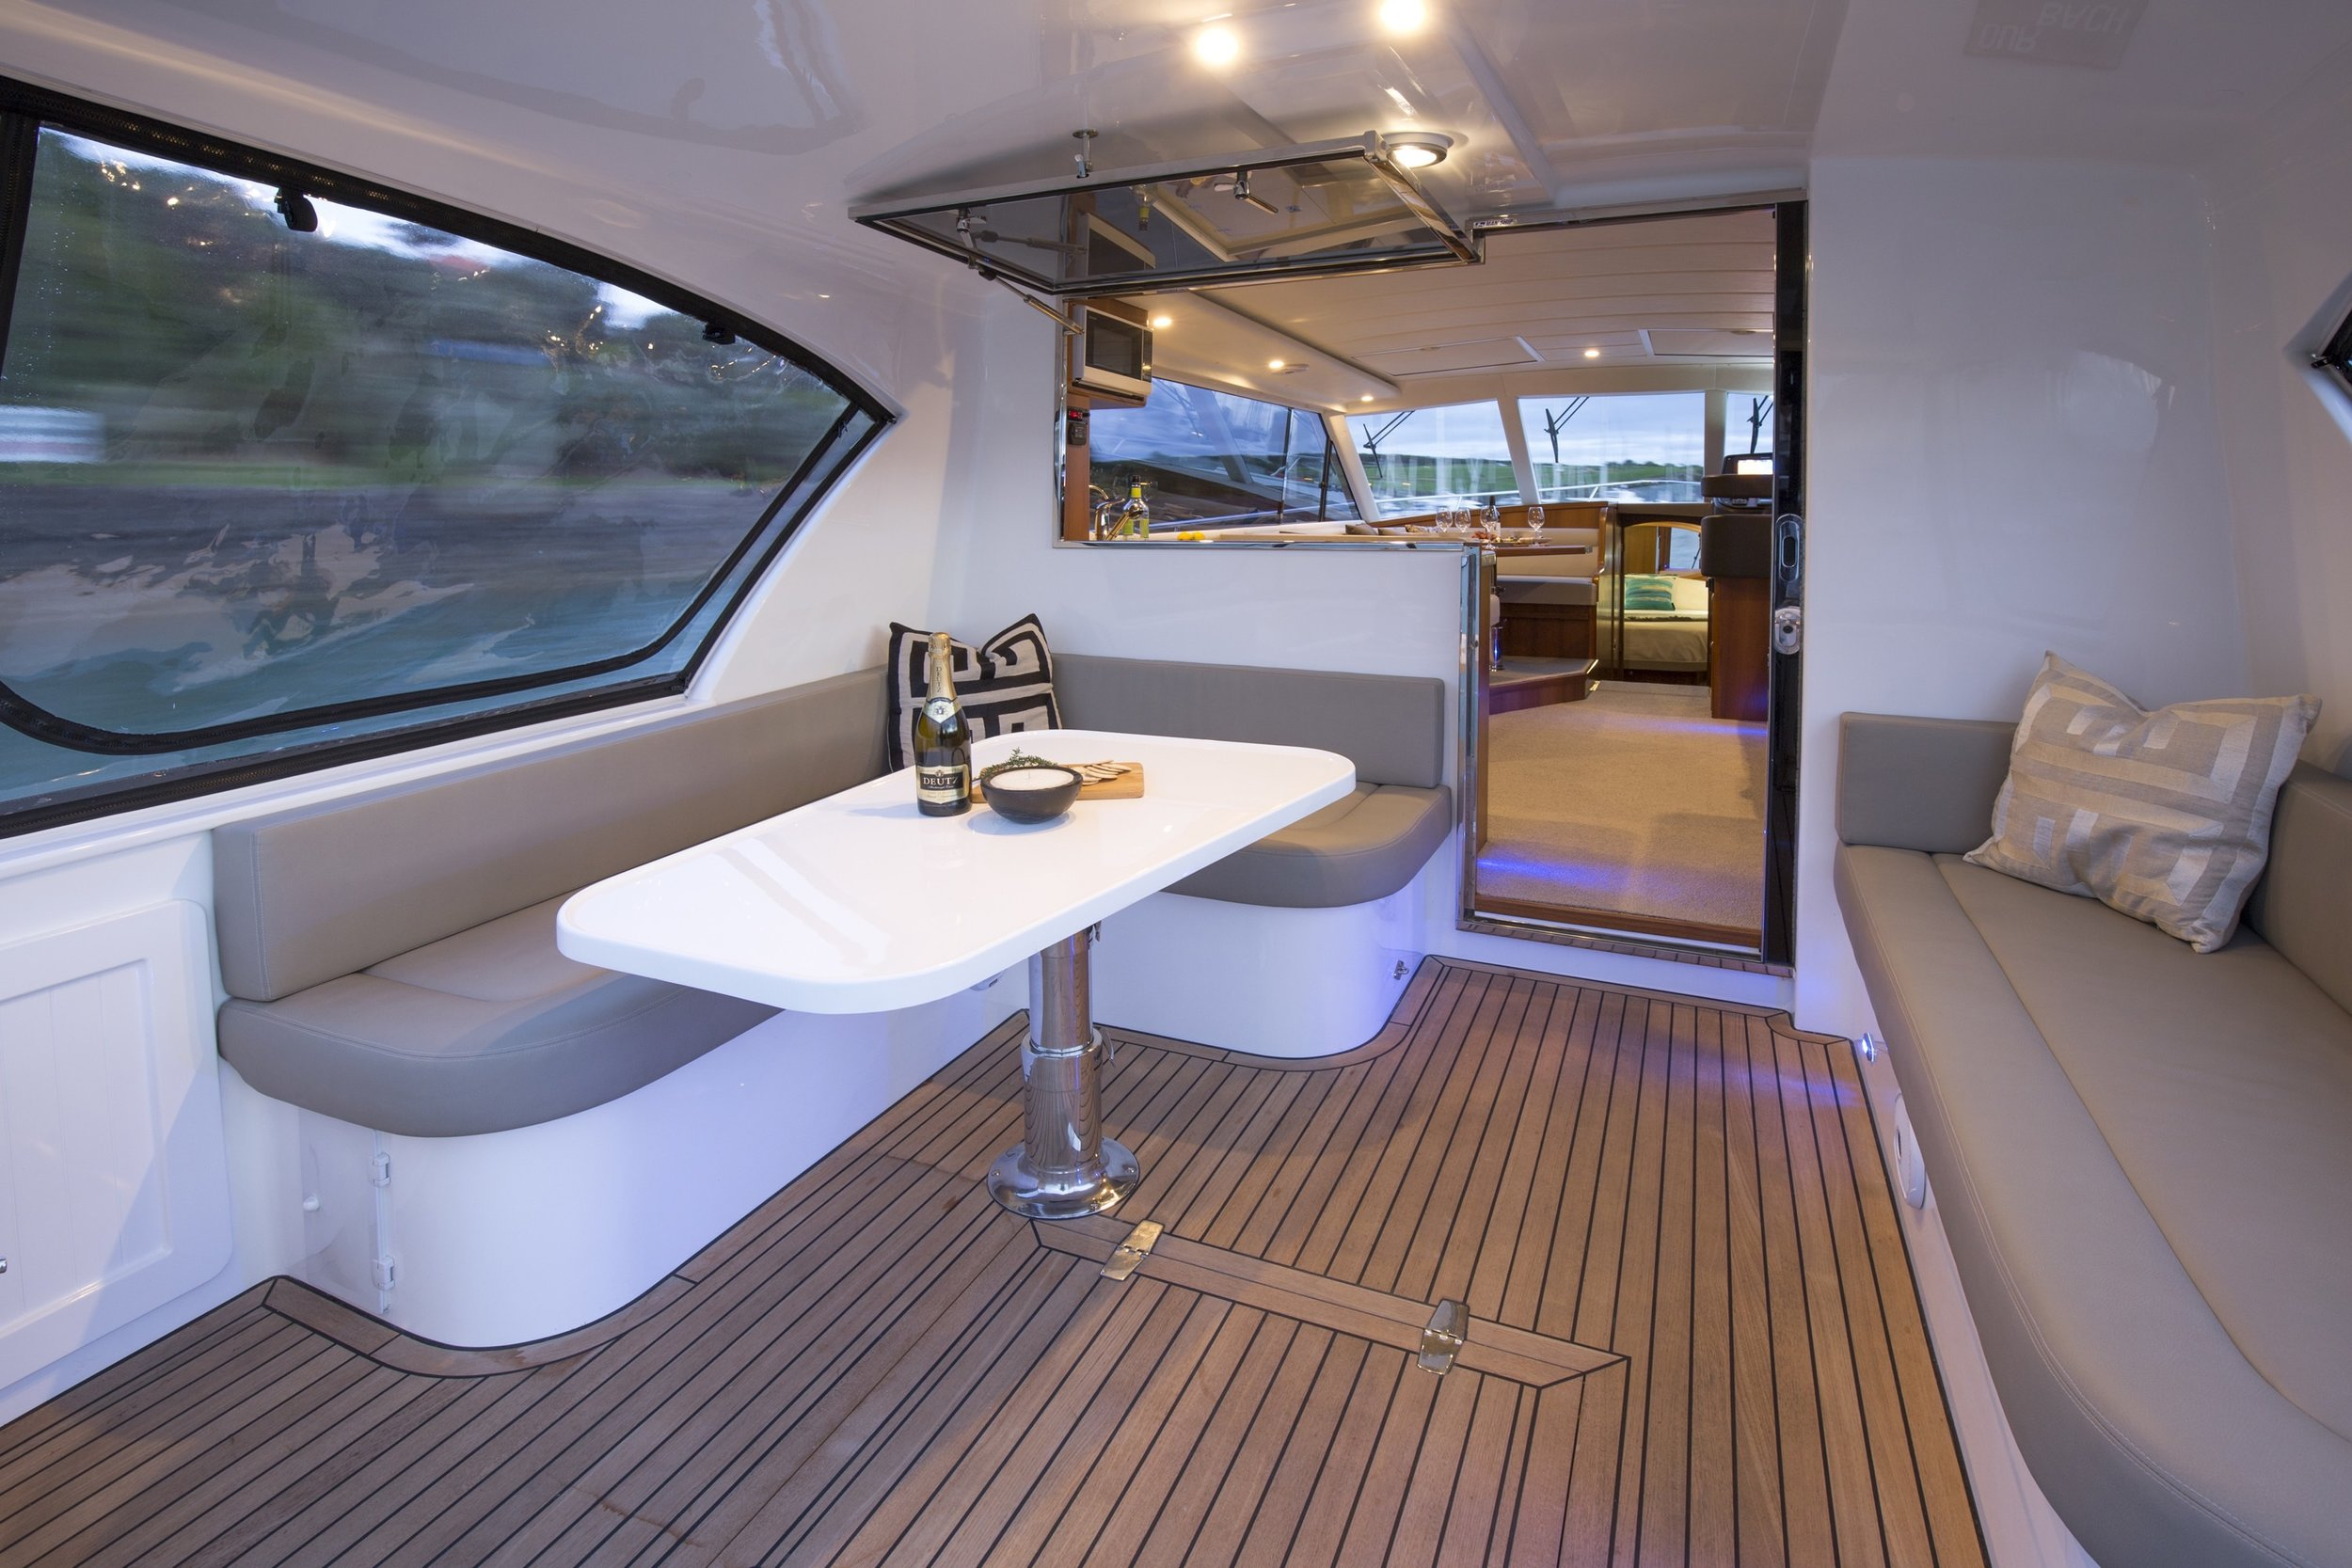 On-water relaxation at it's best - This superb motor yacht design includes an al fresco dining area, with twin cockpit sun loungers that will make you the envy of the bay.- everything you need for on-water relaxation -